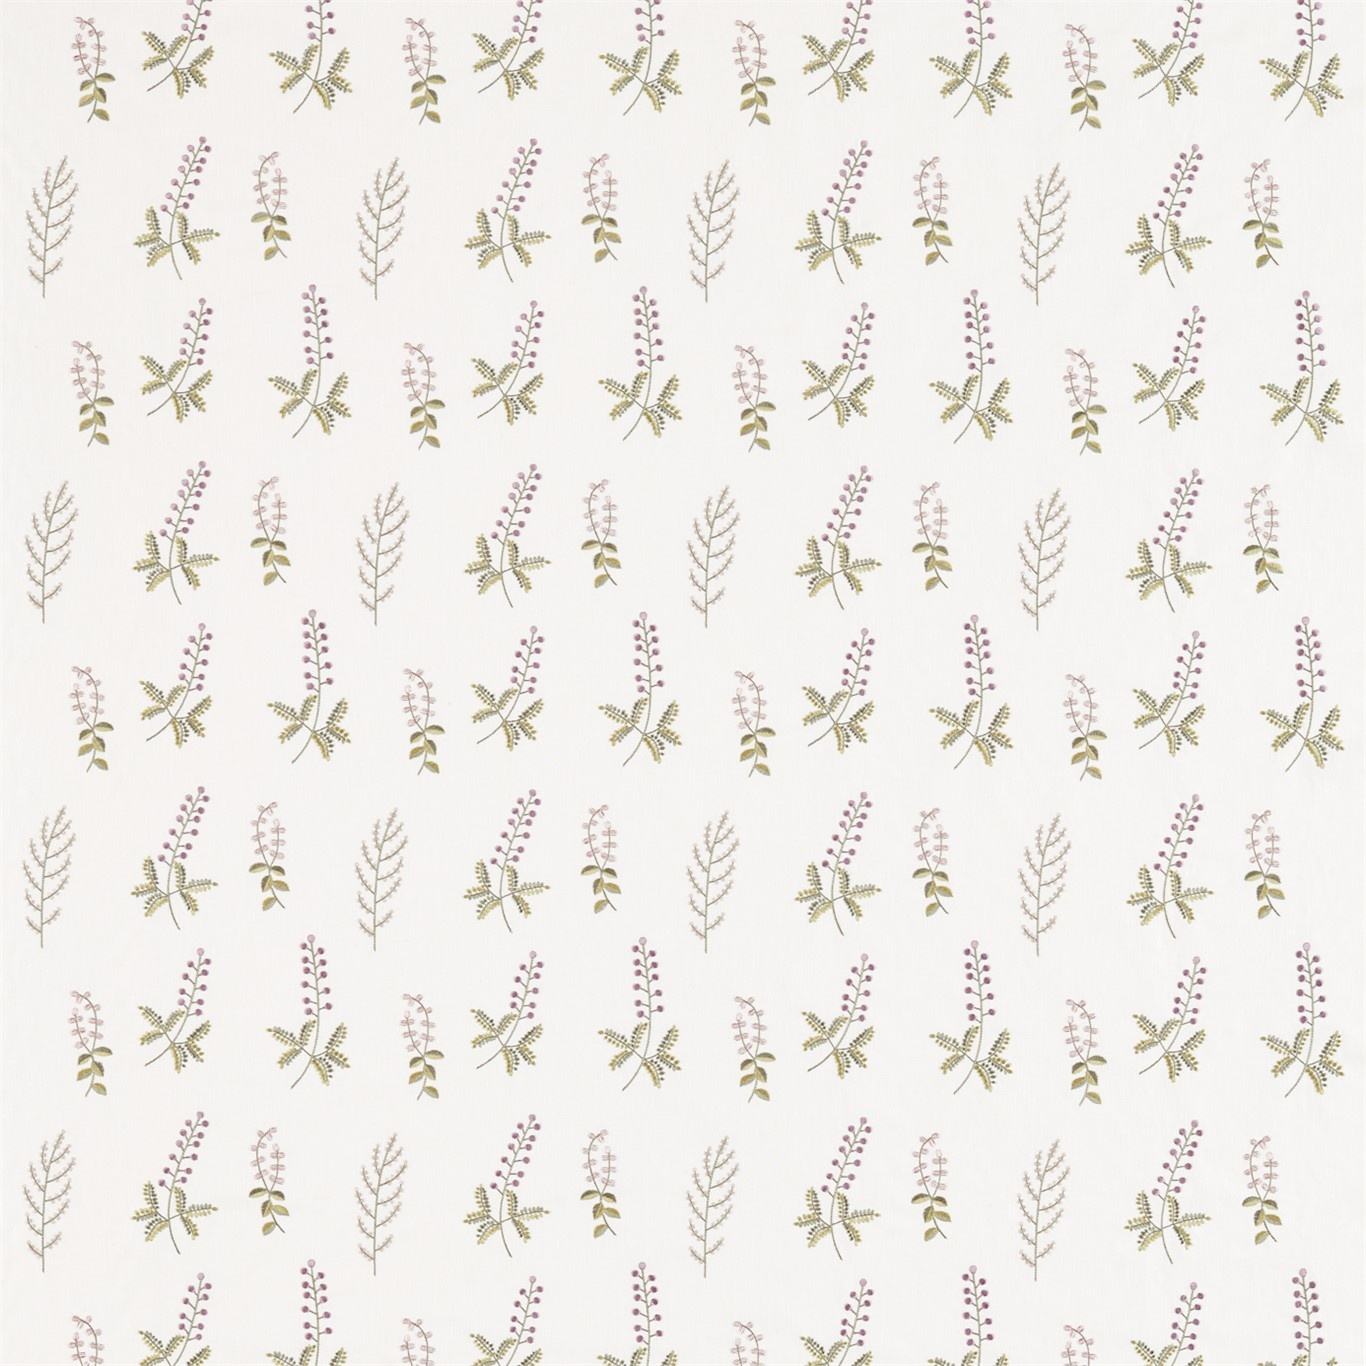 Image of Sanderson Home Bilberry Celadon/Fig Fabric 236425